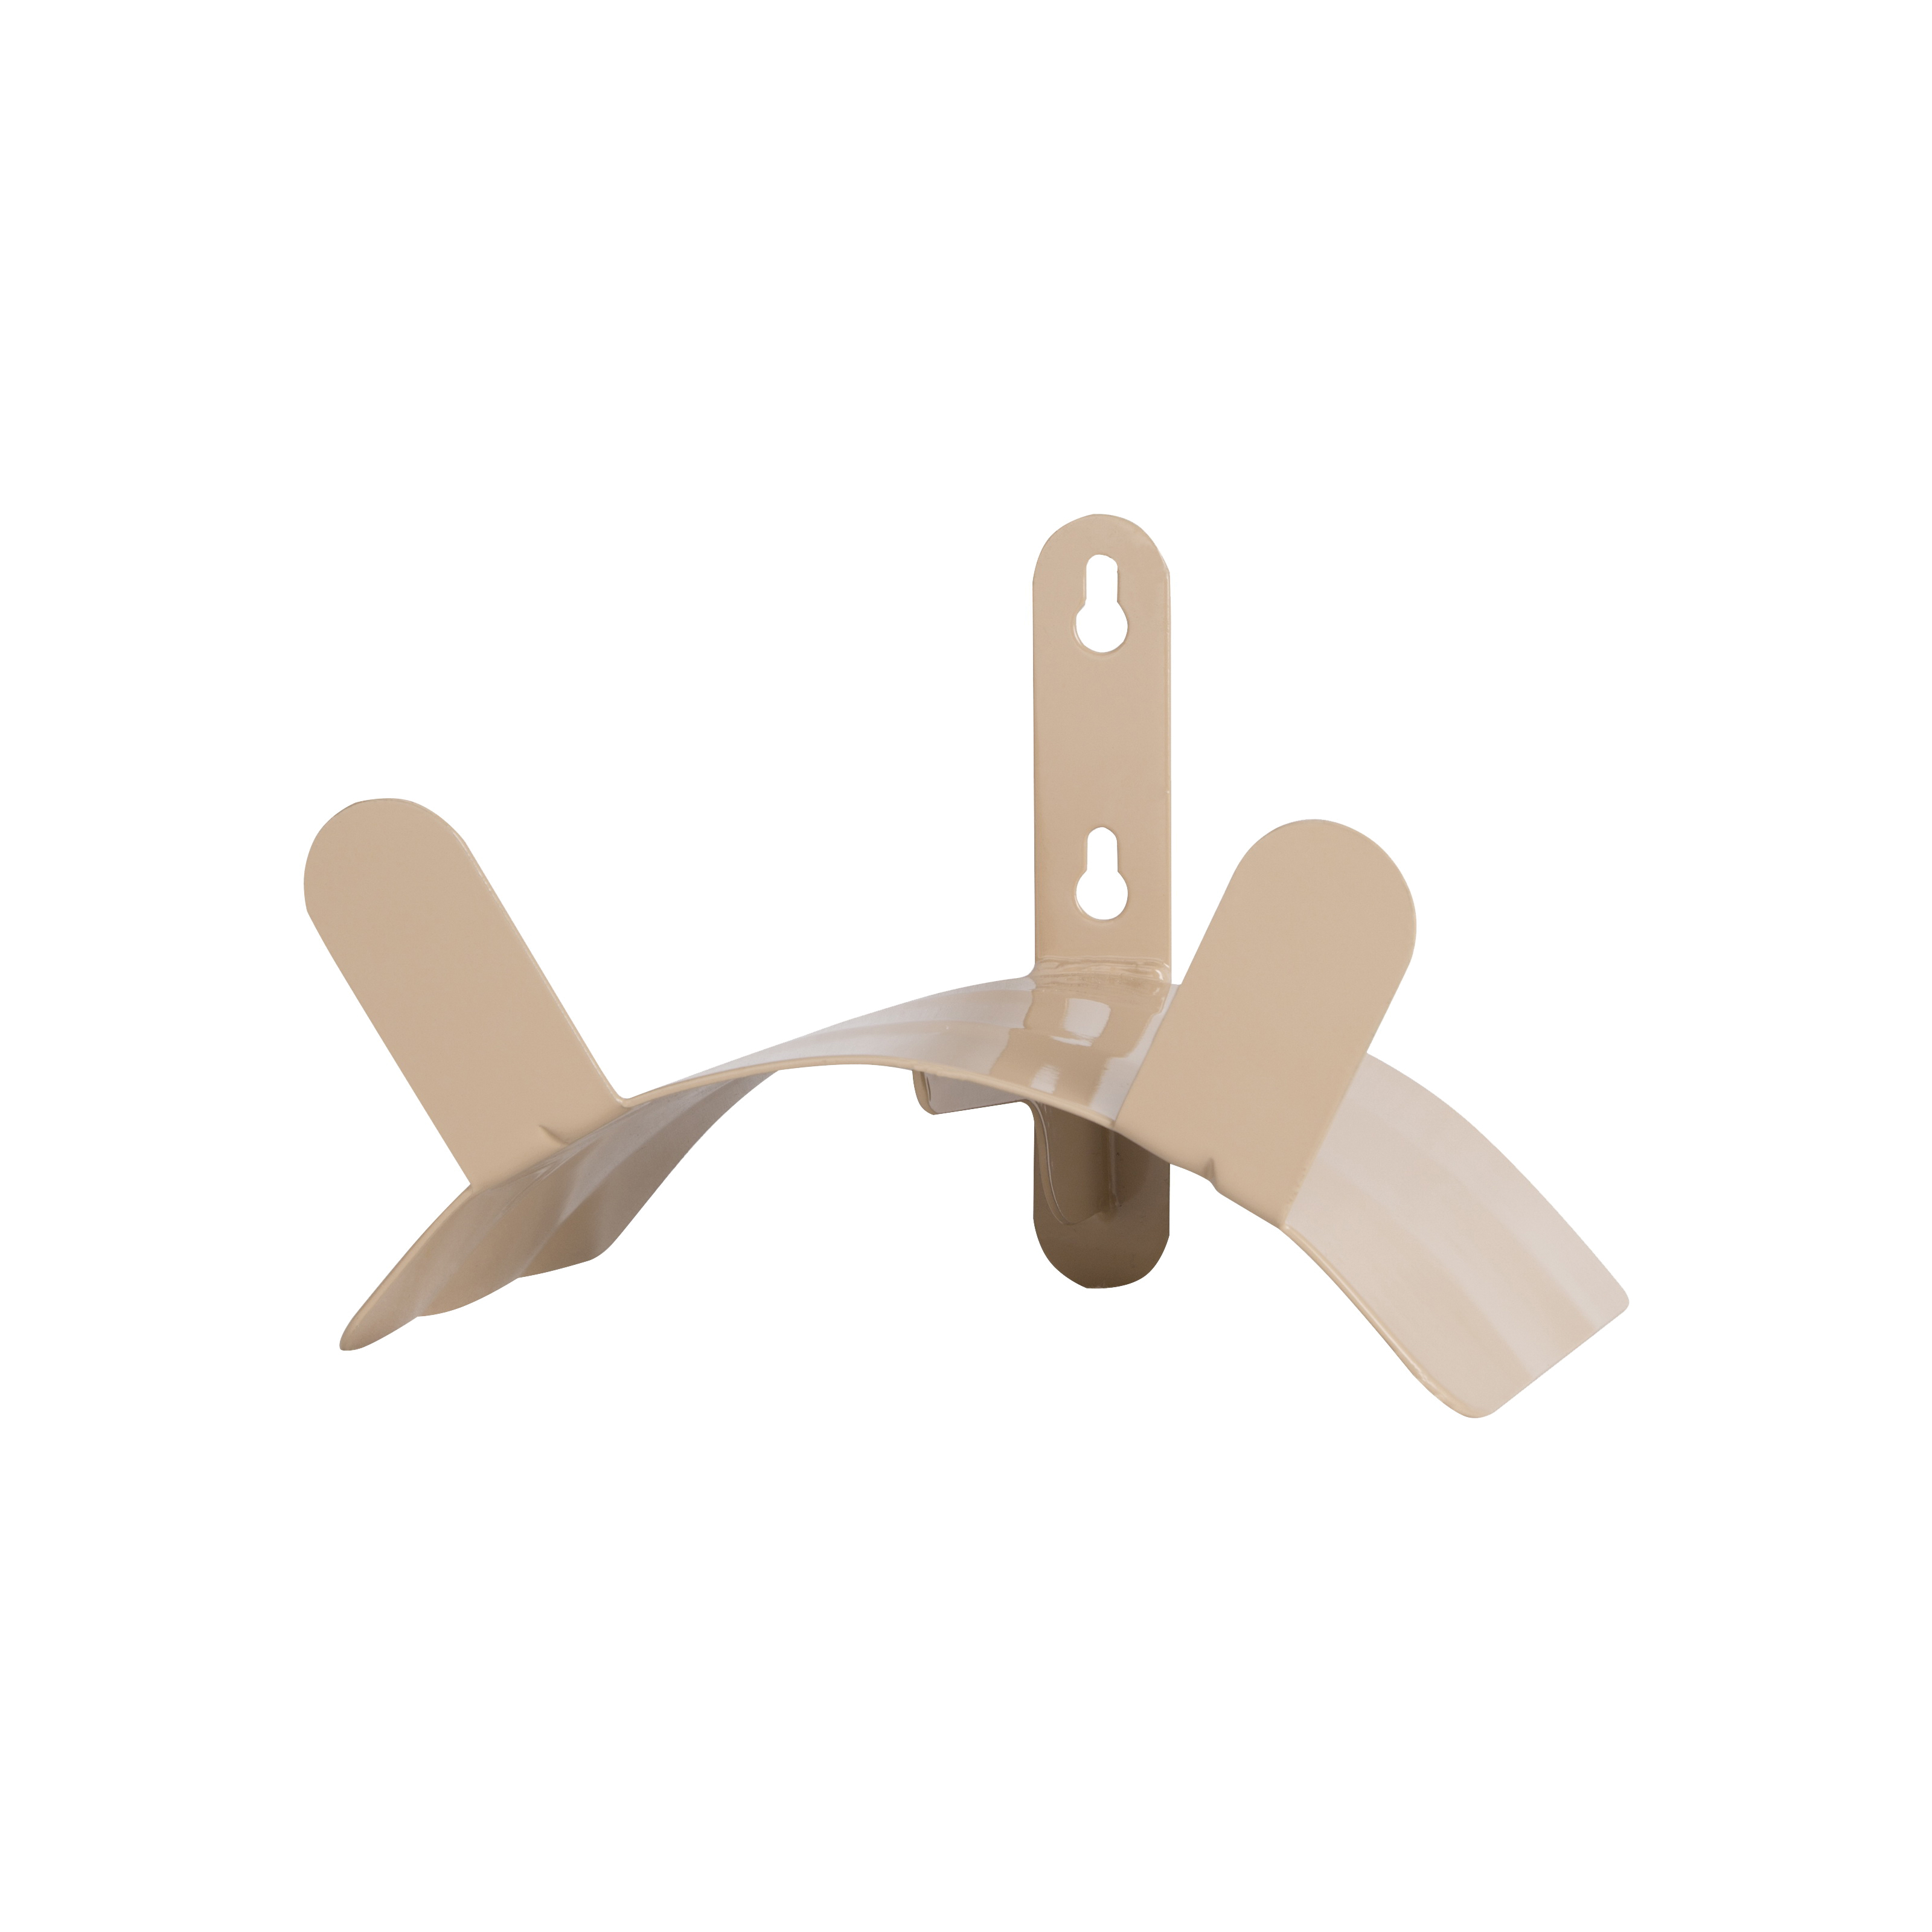 Picture of Landscapers Select HH-691 Hose Hanger, 125 ft Capacity, Steel, Tan, Powder-Coated, Wall Mounting